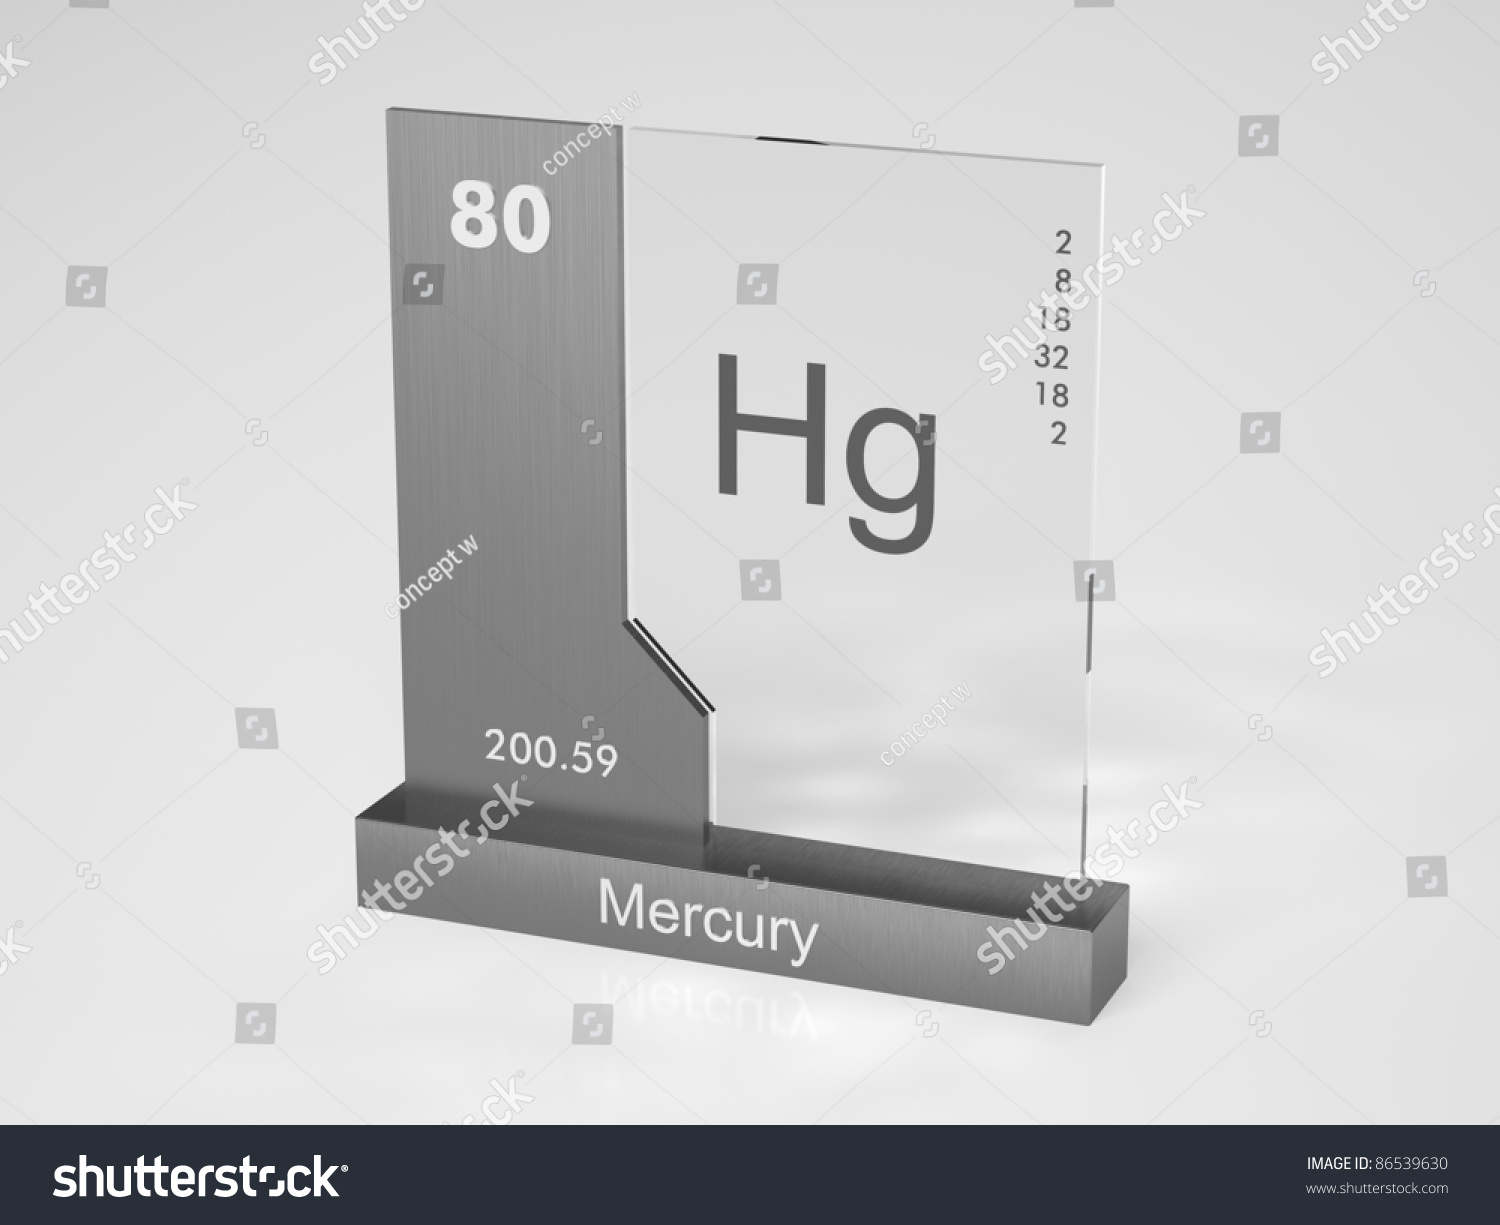 Mercury symbol hg chemical element periodic stock illustration mercury symbol hg chemical element of the periodic table gamestrikefo Image collections